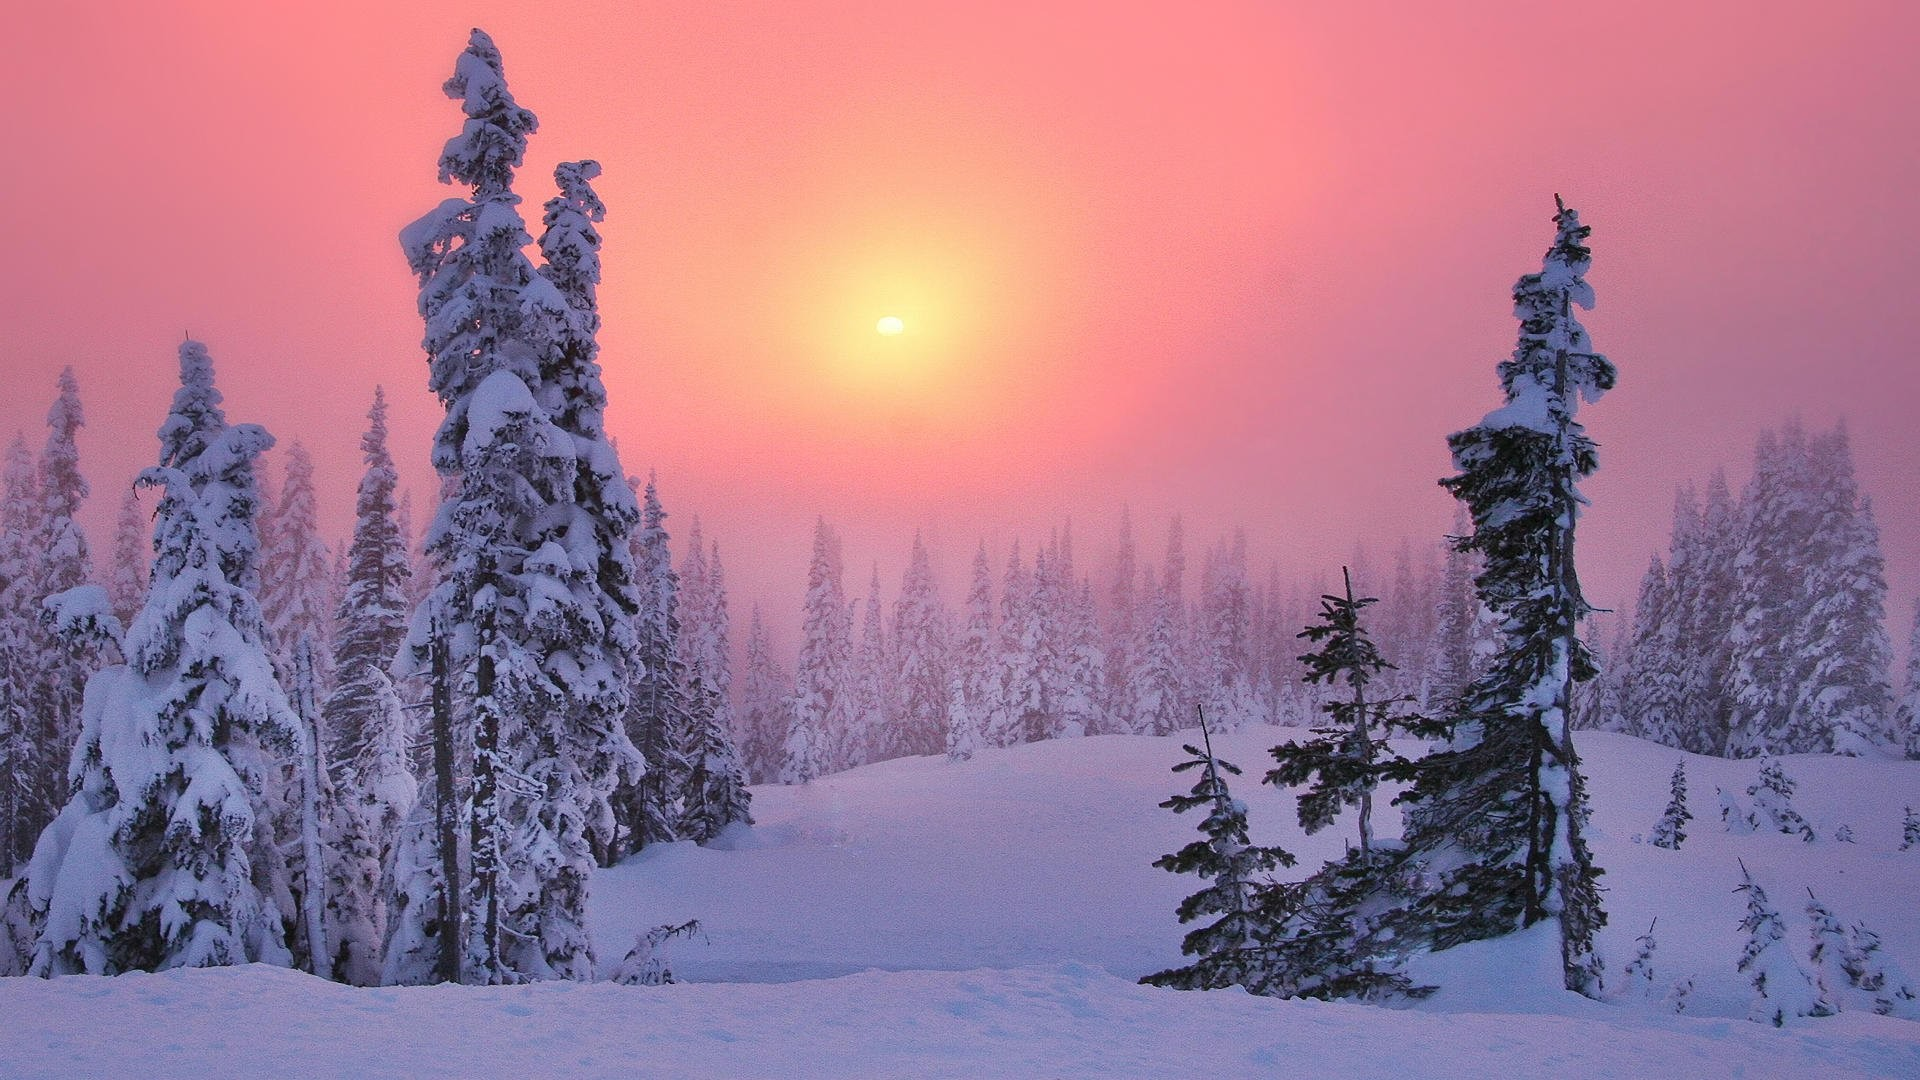 1920x1080 Pink Winter 529885. SHARE. TAGS: Wonderland Albums Widescreen Background  Winter Landscapes